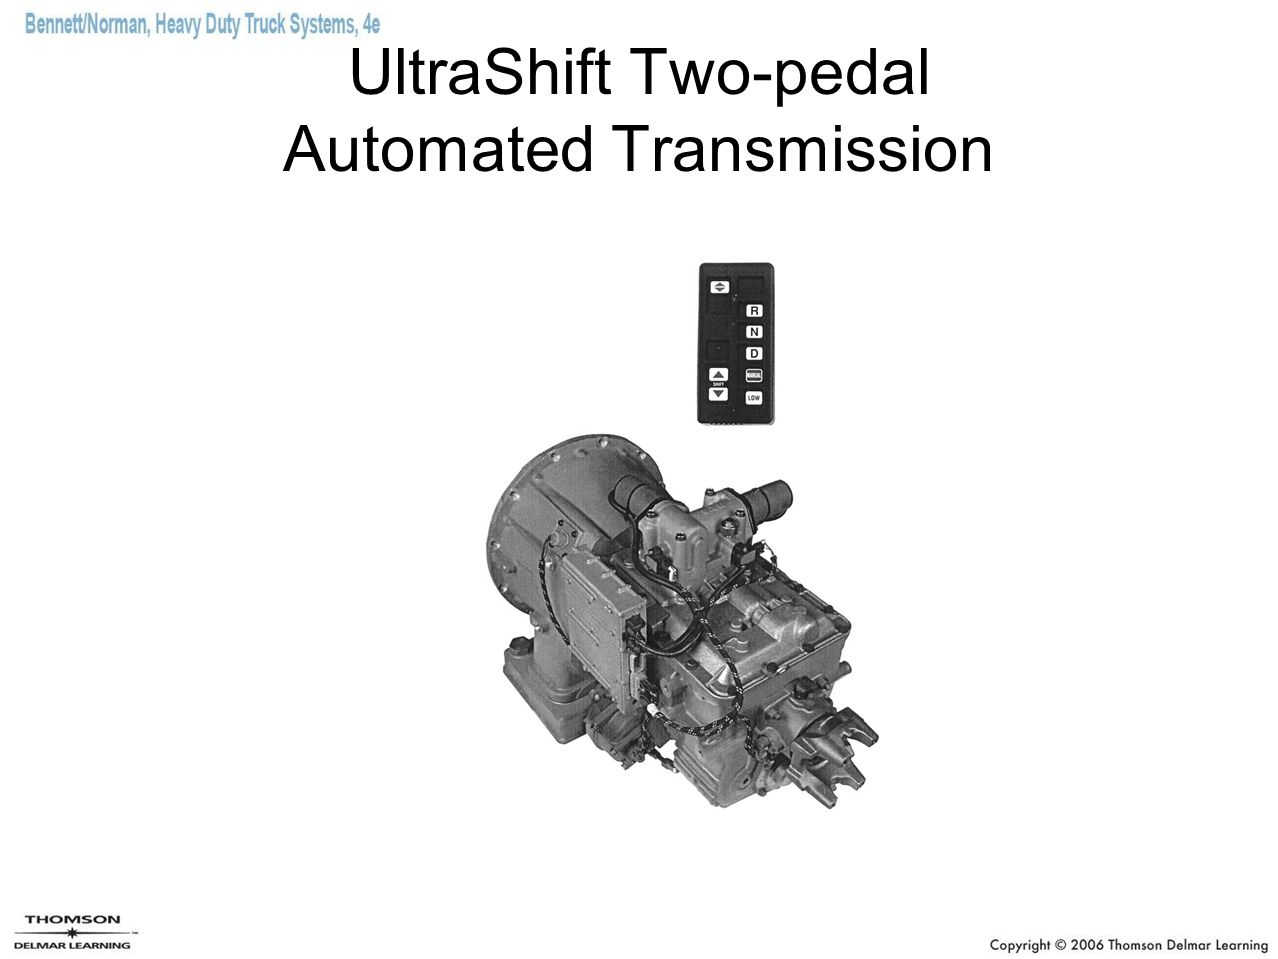 UltraShift Two-pedal Automated Transmission